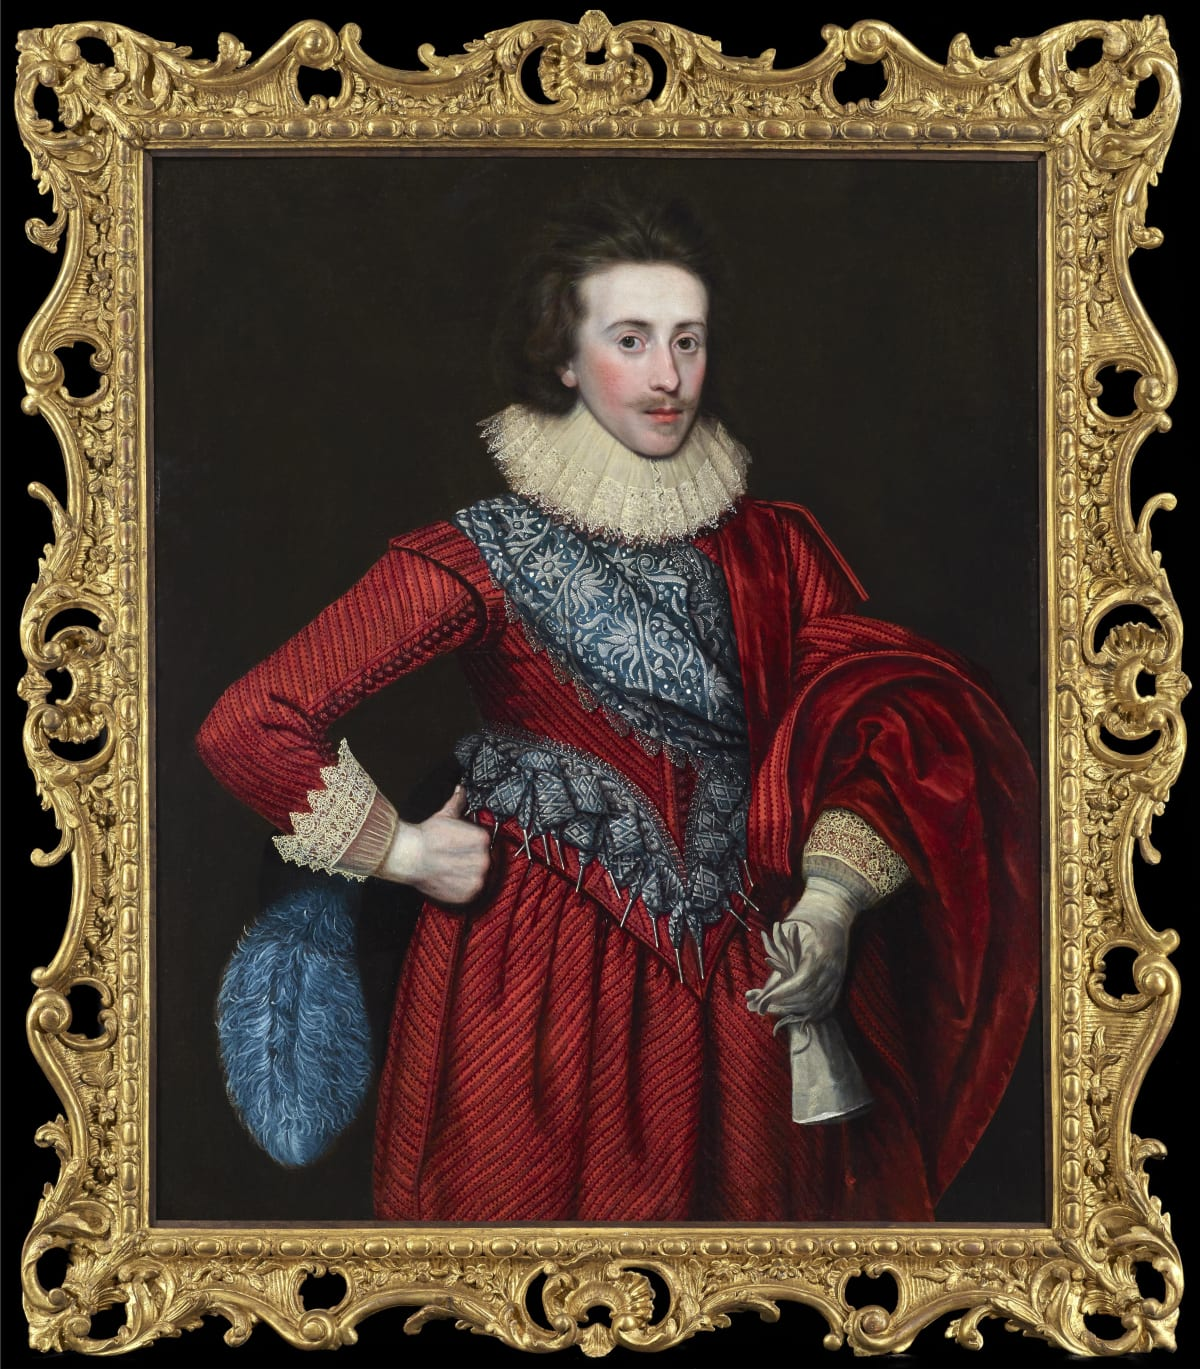 Paul van Somer (1576 - 1621) Sir Thomas Dallison, 2nd Bt. of Laughton (1591 - 1645) , c.1620 Oil on canvas 43 x 35 ¼ in. (109.2 x 90 cm.) Housed in an English 18th century carved giltwood frame